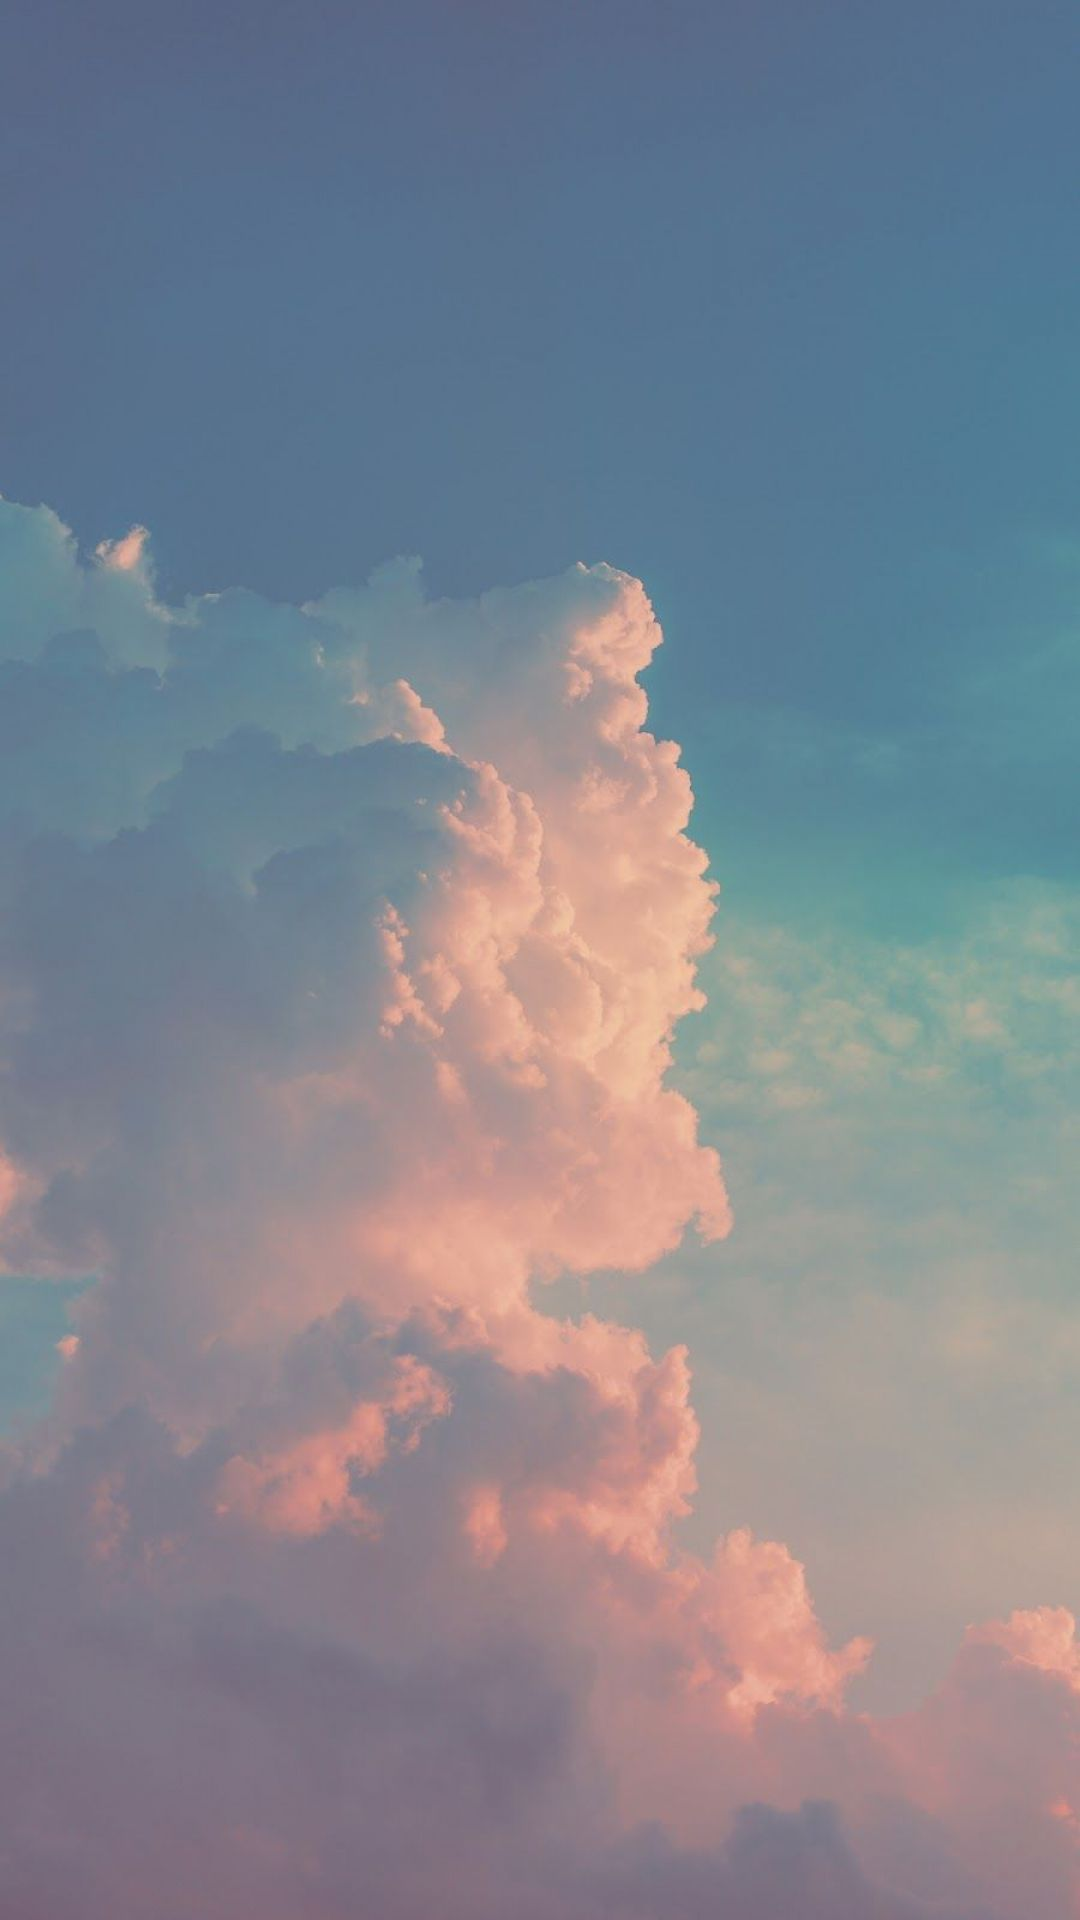 Clouds Android Iphone Desktop Hd Backgrounds Wallpapers 1080p 4k 126302 Hdwallpapers Androidwa Sky Aesthetic Cloud Wallpaper Aesthetic Wallpapers